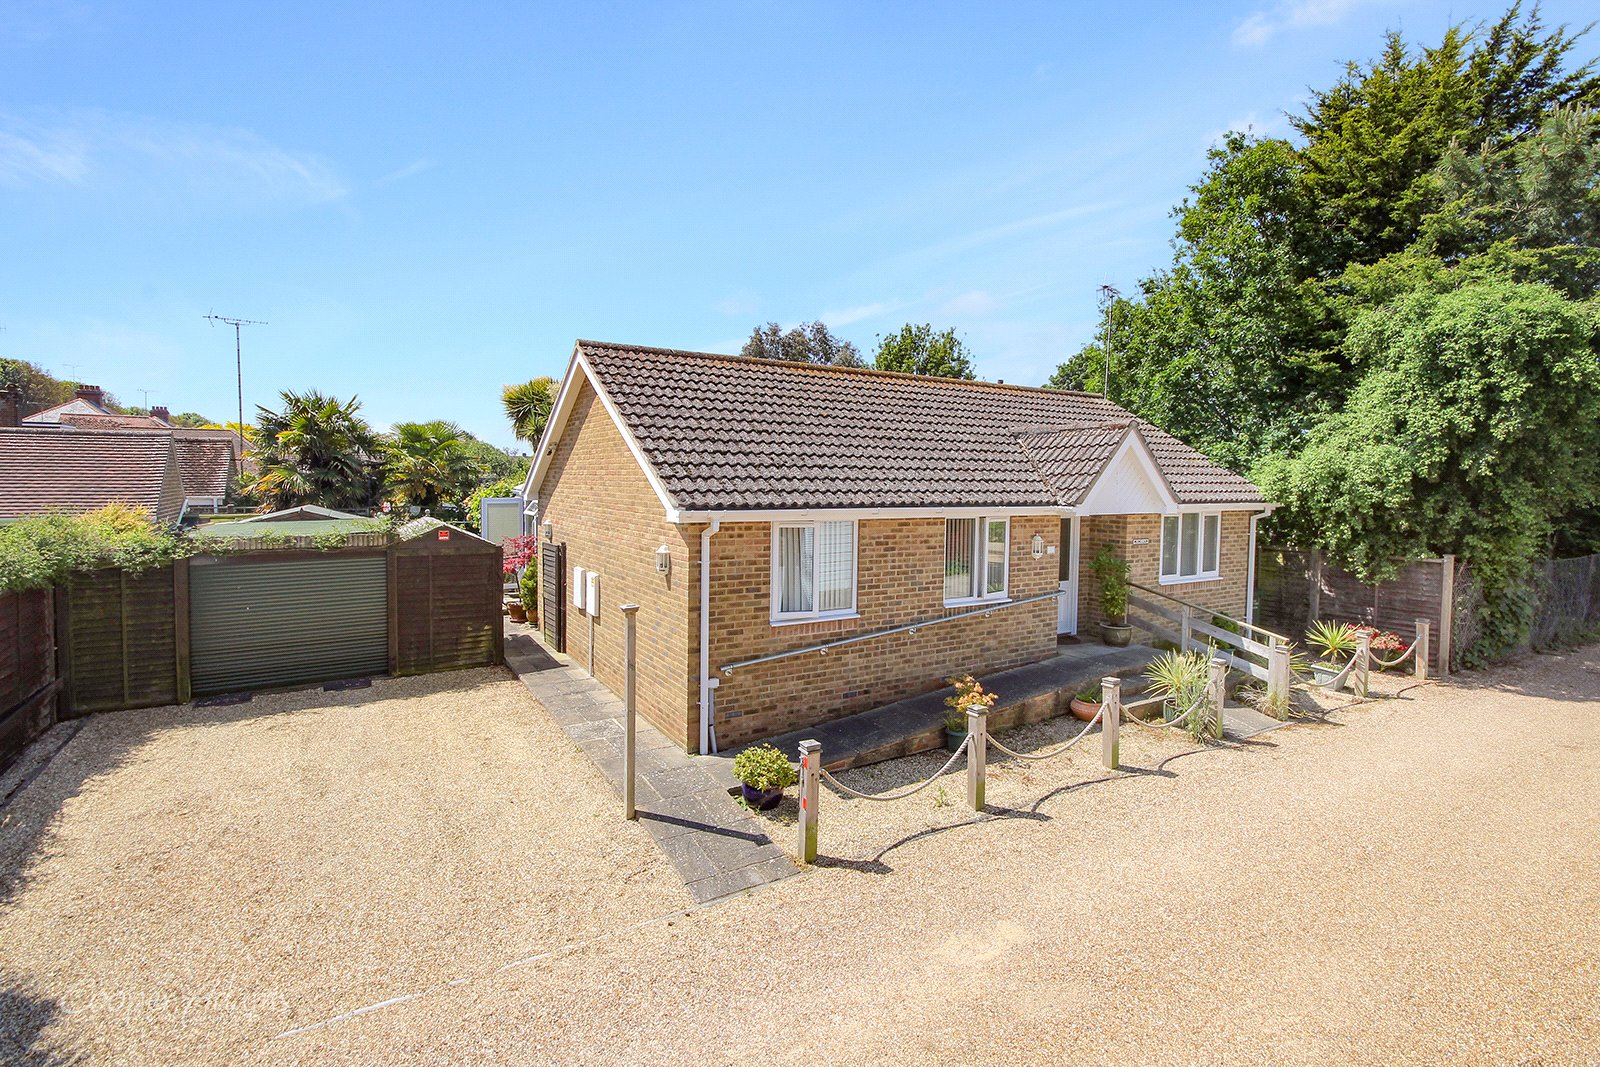 2 bed bungalow for sale in The Driftway, Rustington, BN16